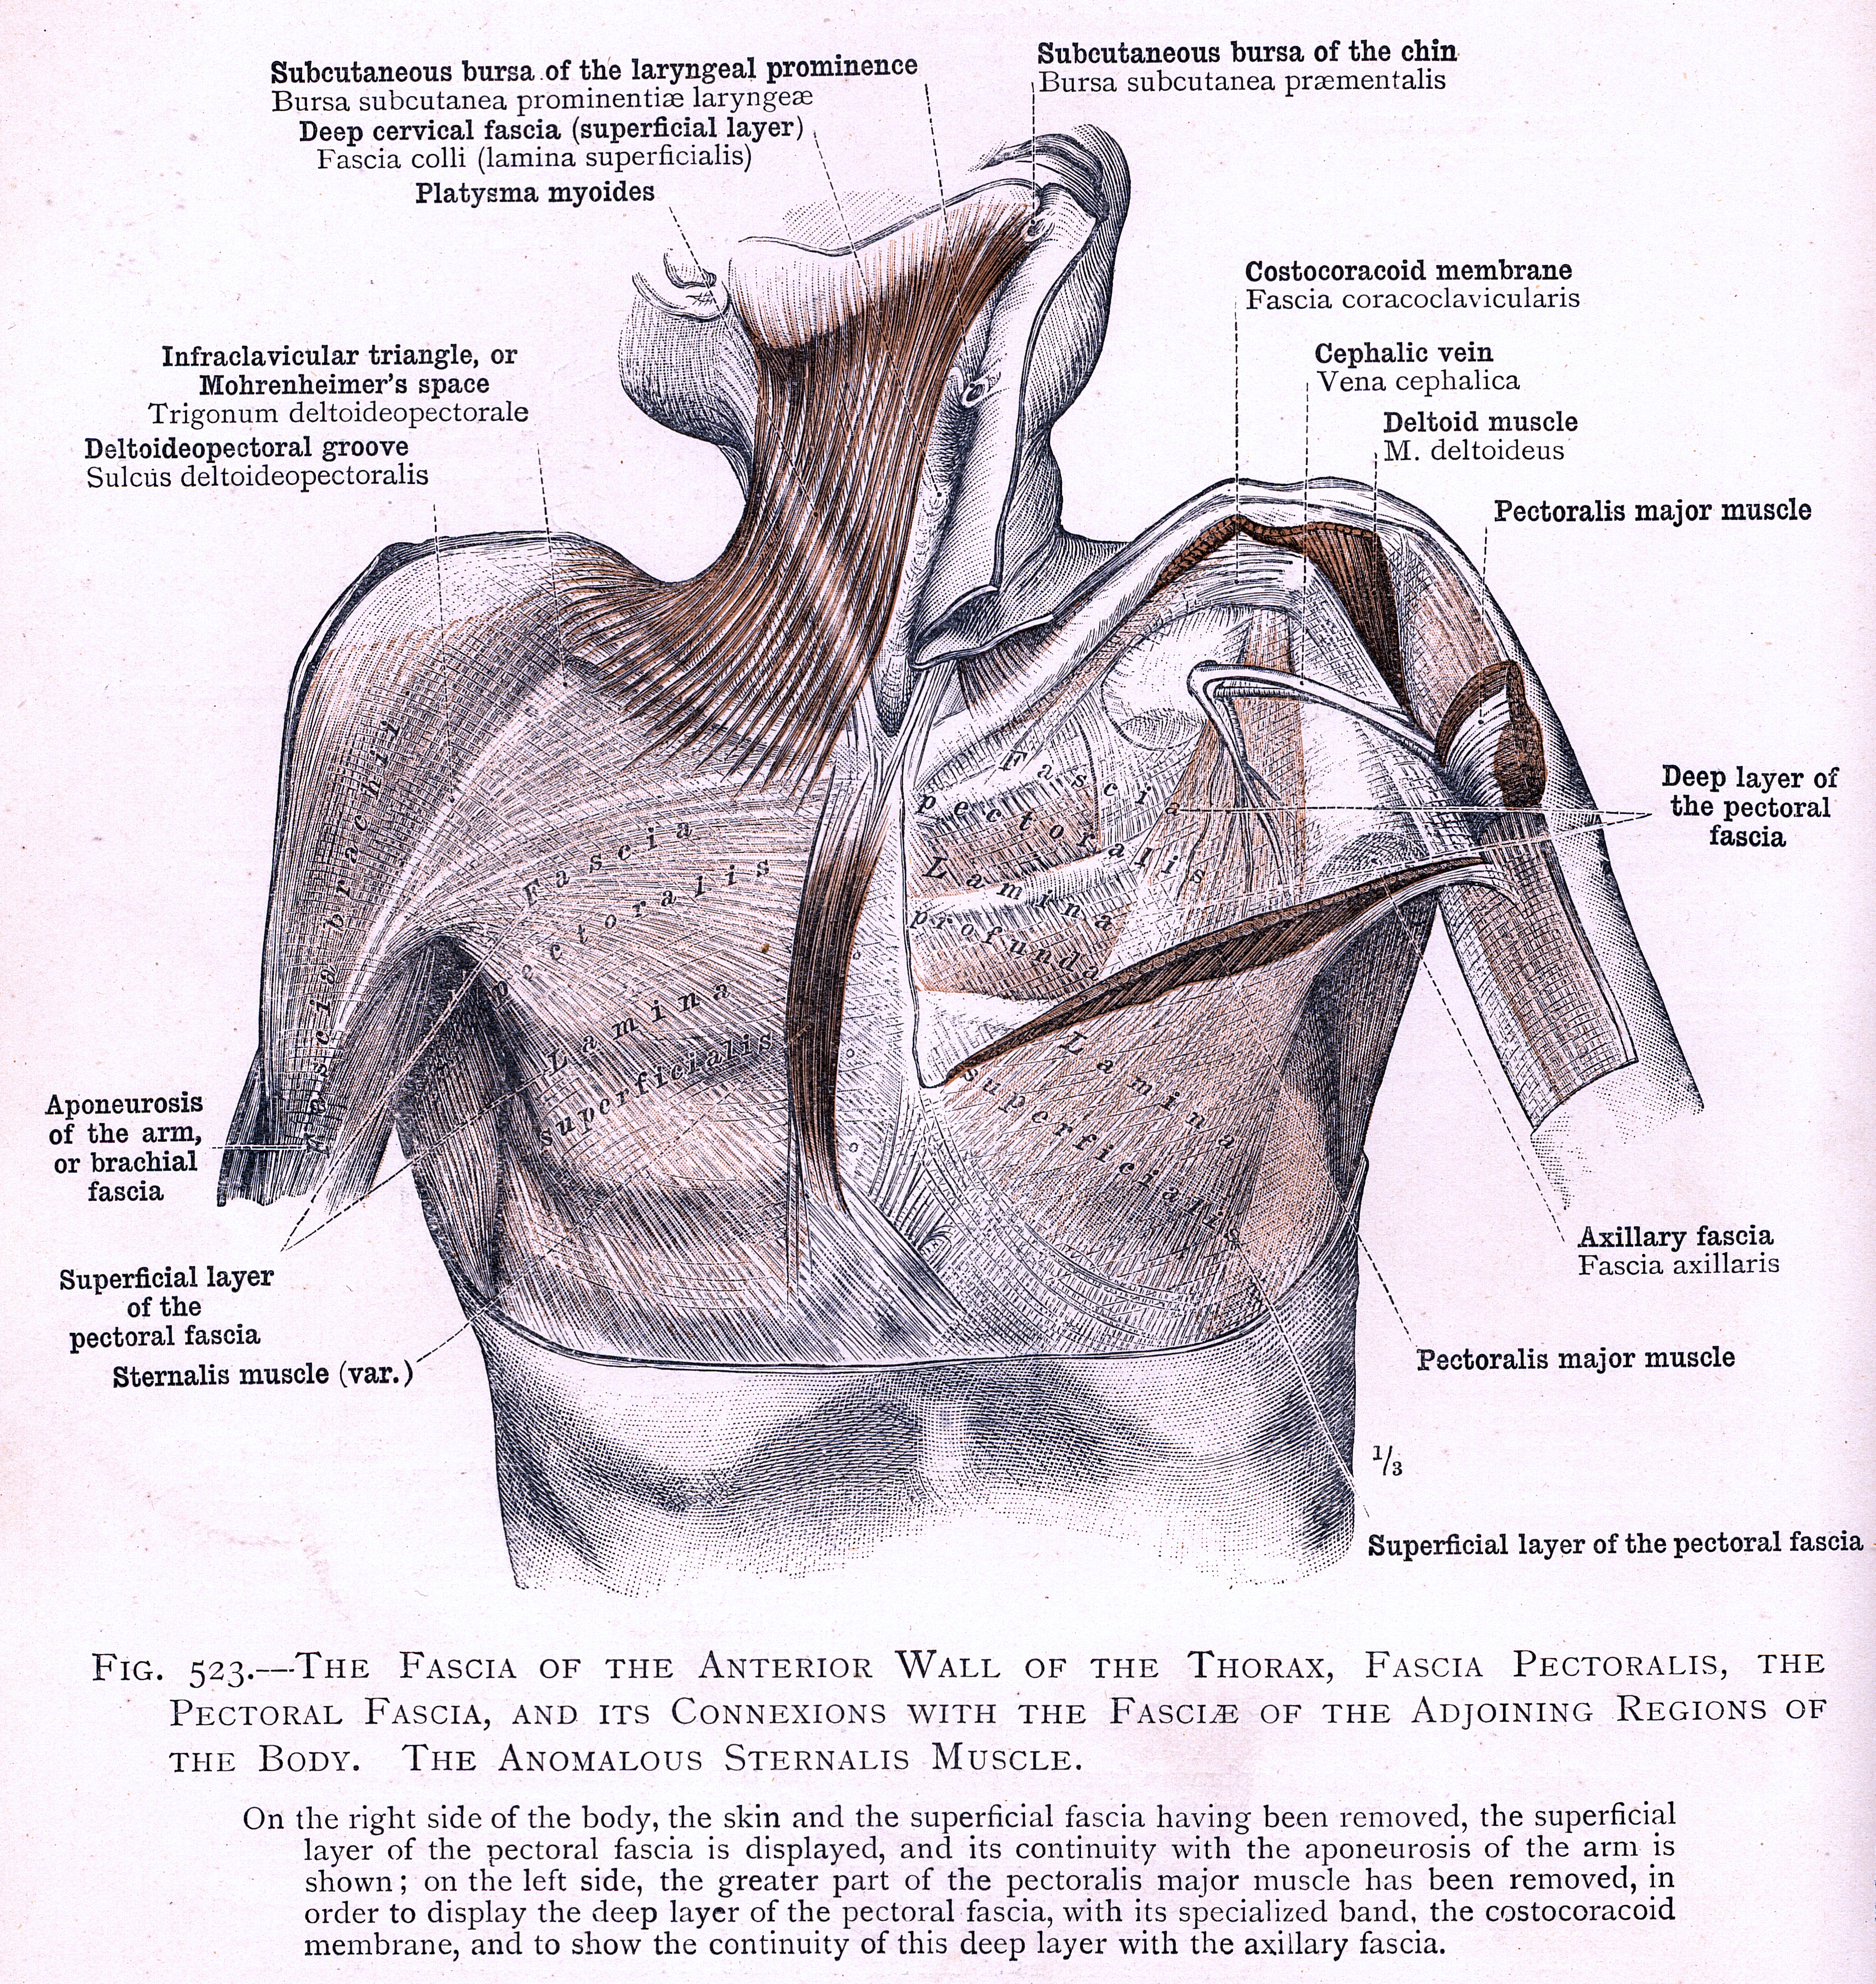 523. The fascia of the anterior wall of the thorax, fascia ...